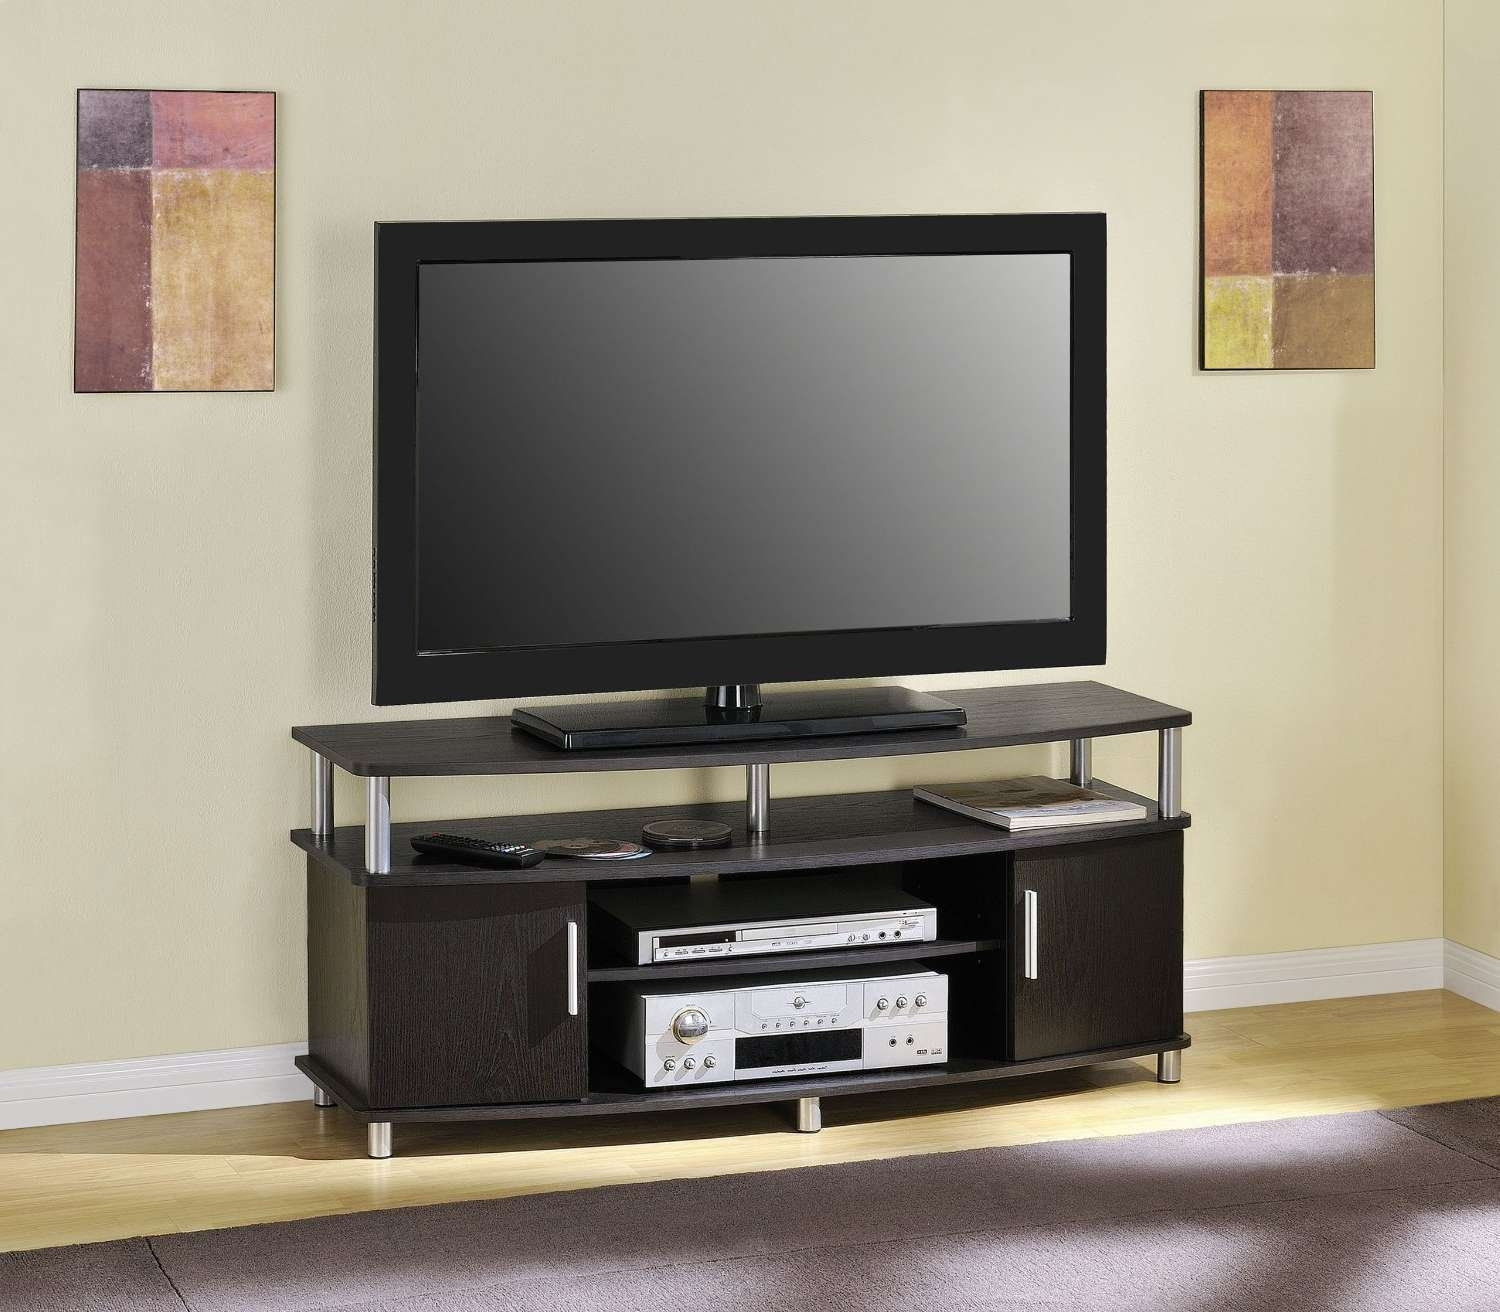 Tv Stands: 7 Best Selling Flat Screen Tv Stands 2017 For Big Tv Stands Furniture (View 12 of 15)